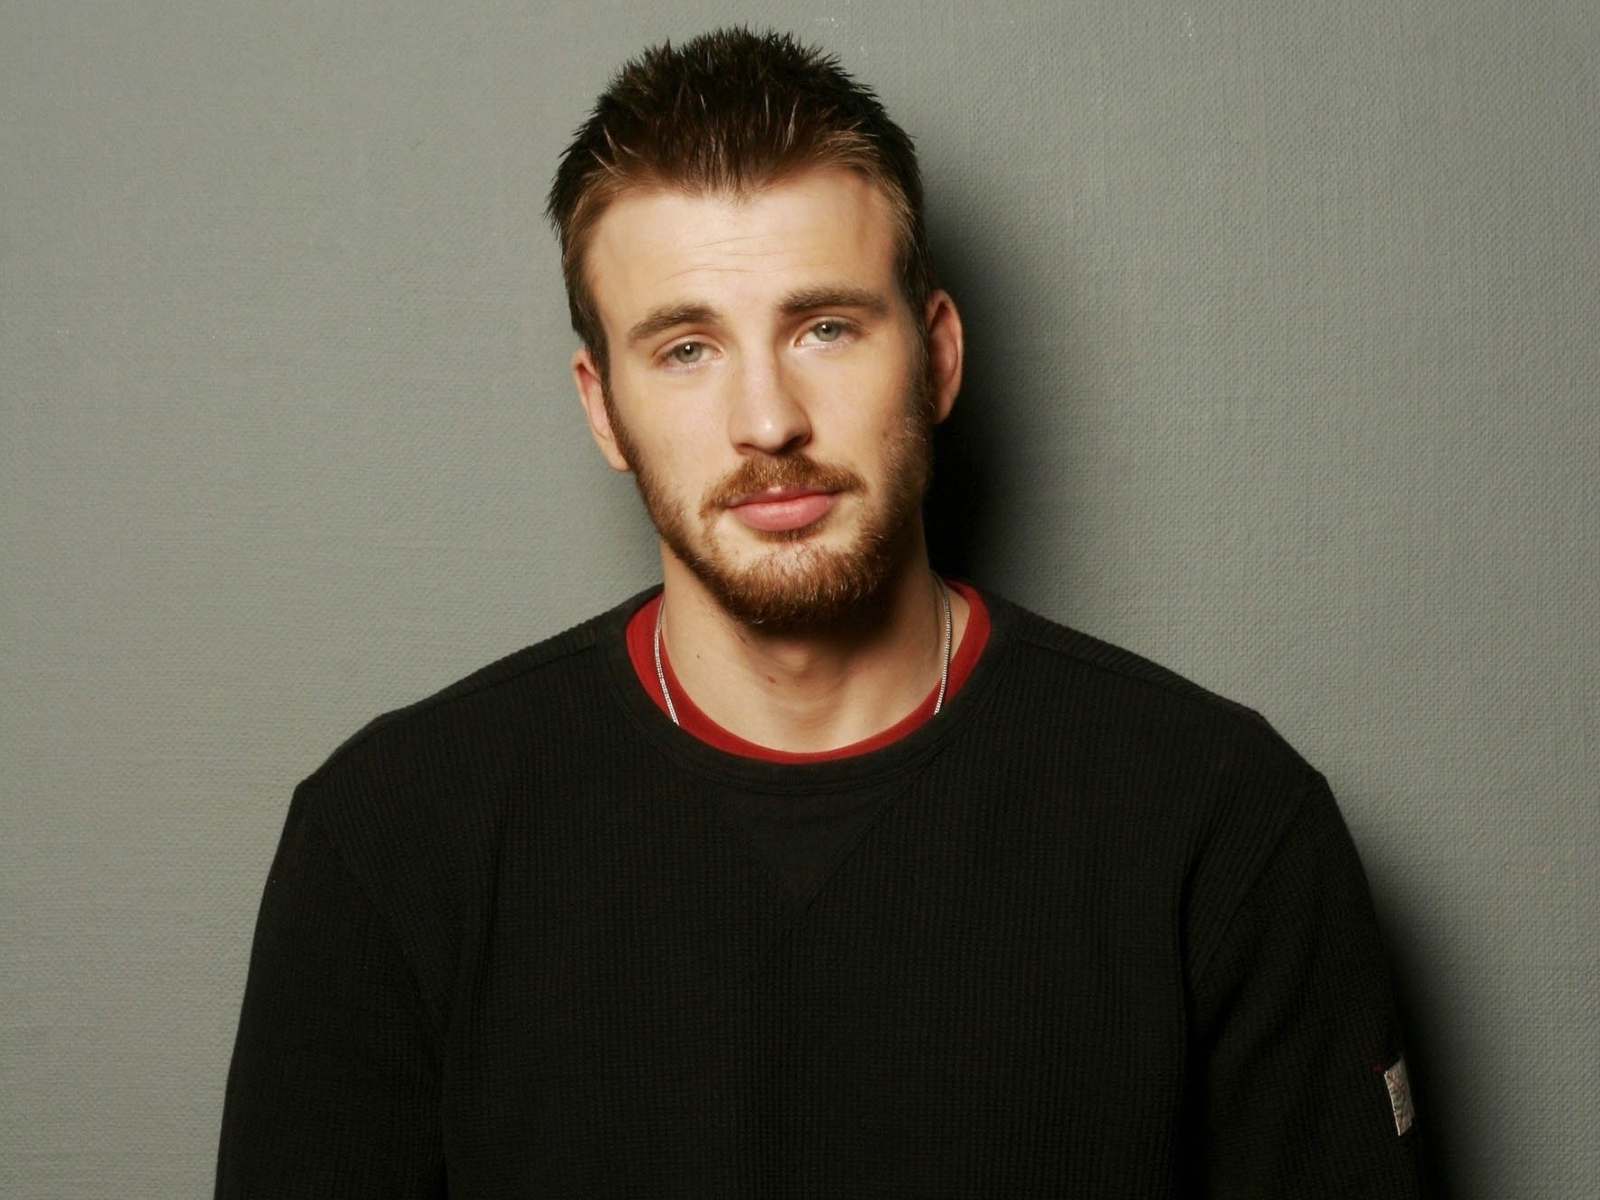 wallpaperstopick: Chris Evans